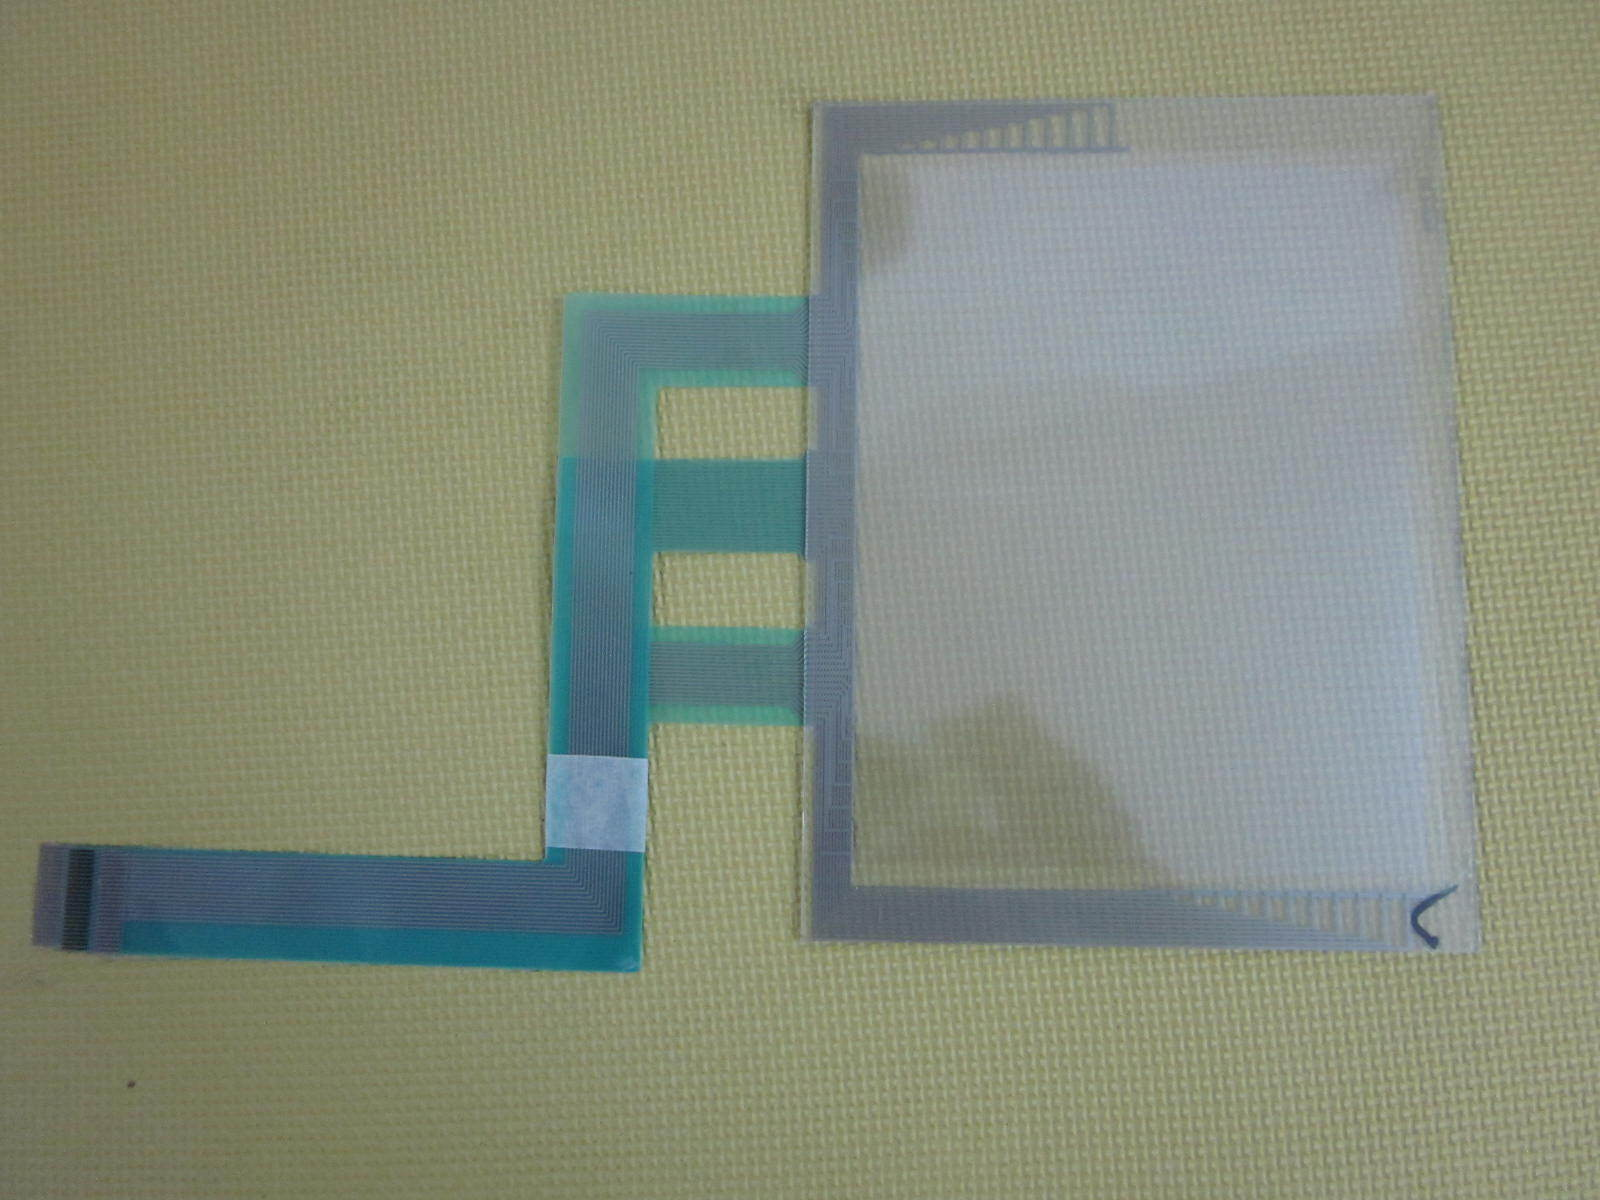 Touch Screen for Pro-face GP570-BG11-24V GP570-LG21-24V GP570-SC31-24V Touchpad HMI Panel Glass